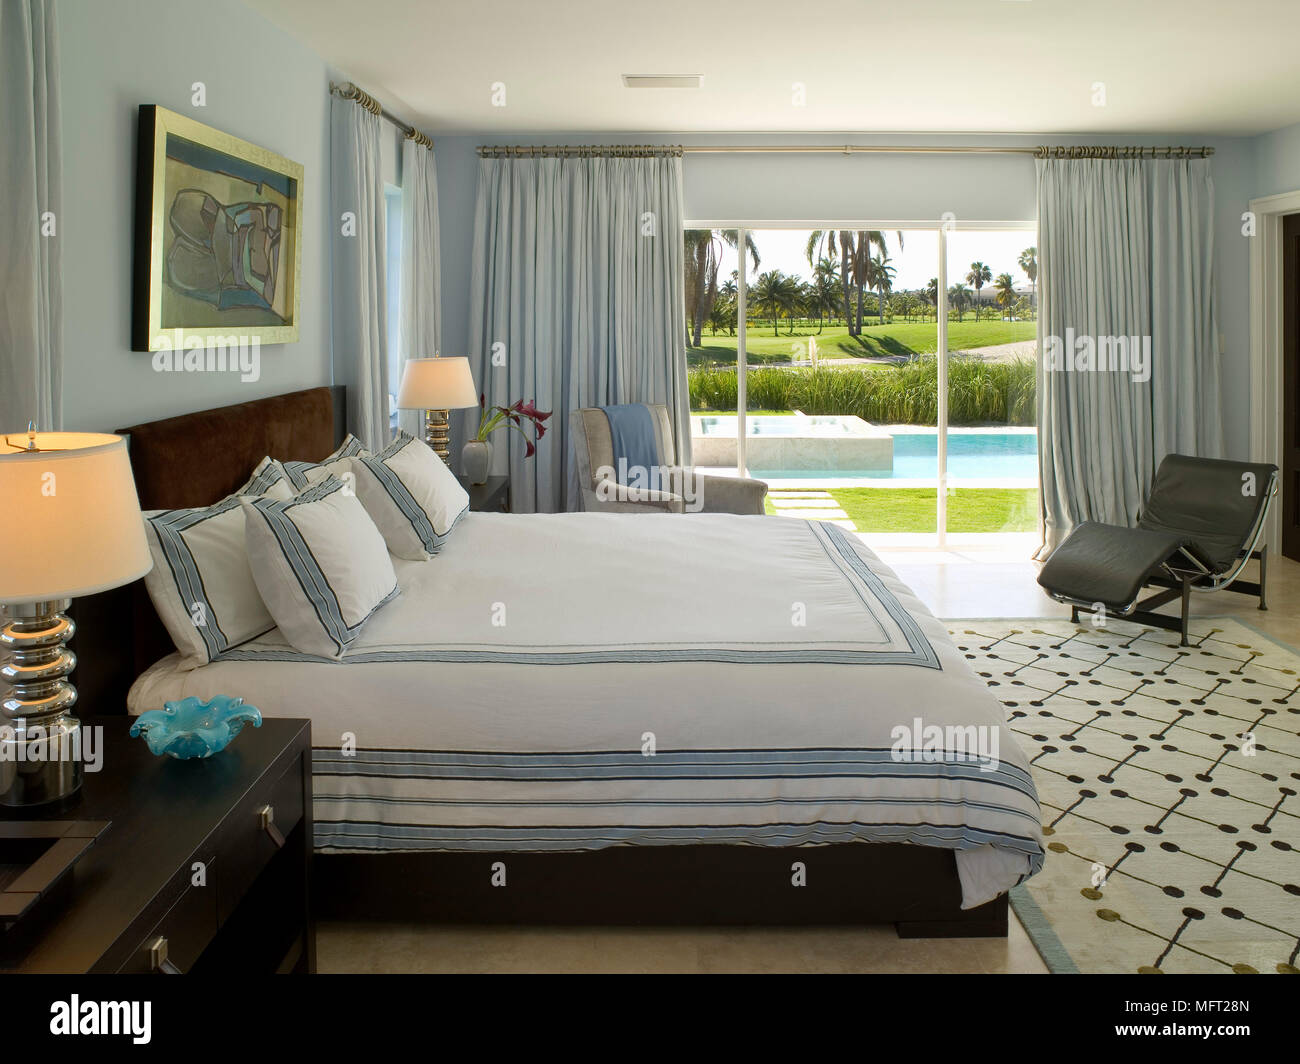 Bedroom With Framed Artwork Above Double Bed And Large Rug Leading To  Sliding Glass Doors With View On To Swimming Pool